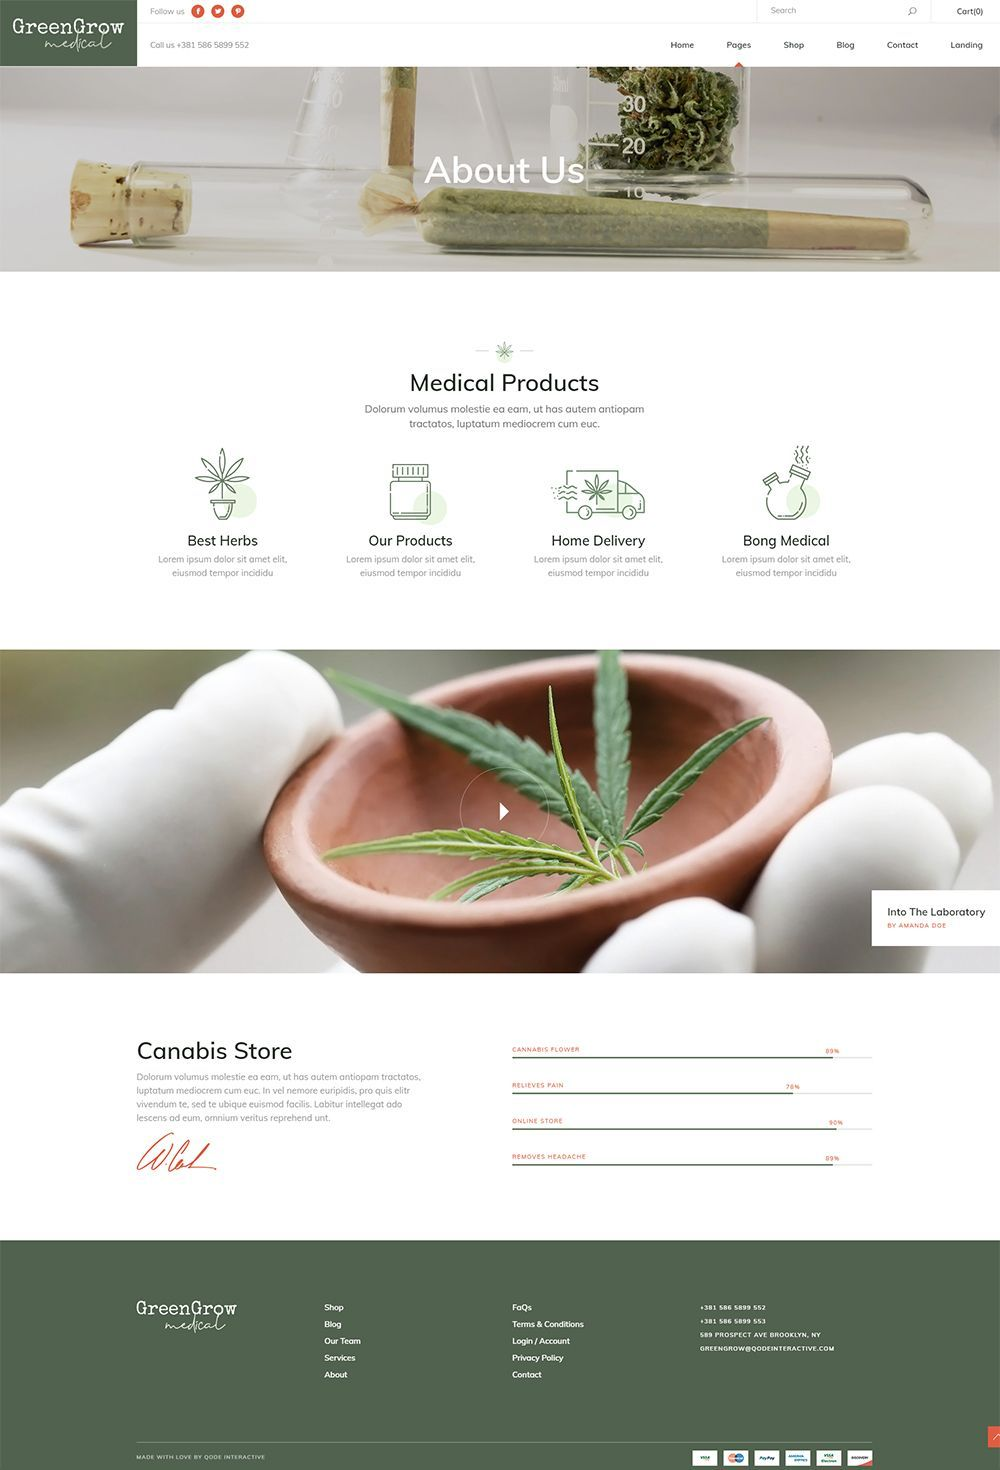 GreenGrow WordPress theme is designed to help you medical marijuana and cannabis business reach new heights. #wordpress #theme #design #webdesign #uxdesign #uidesign #responsive #designinspiration #webdesign #wordpresslove #template #layout #websitedesign #branding #websiteideas #webart #webpage #visual